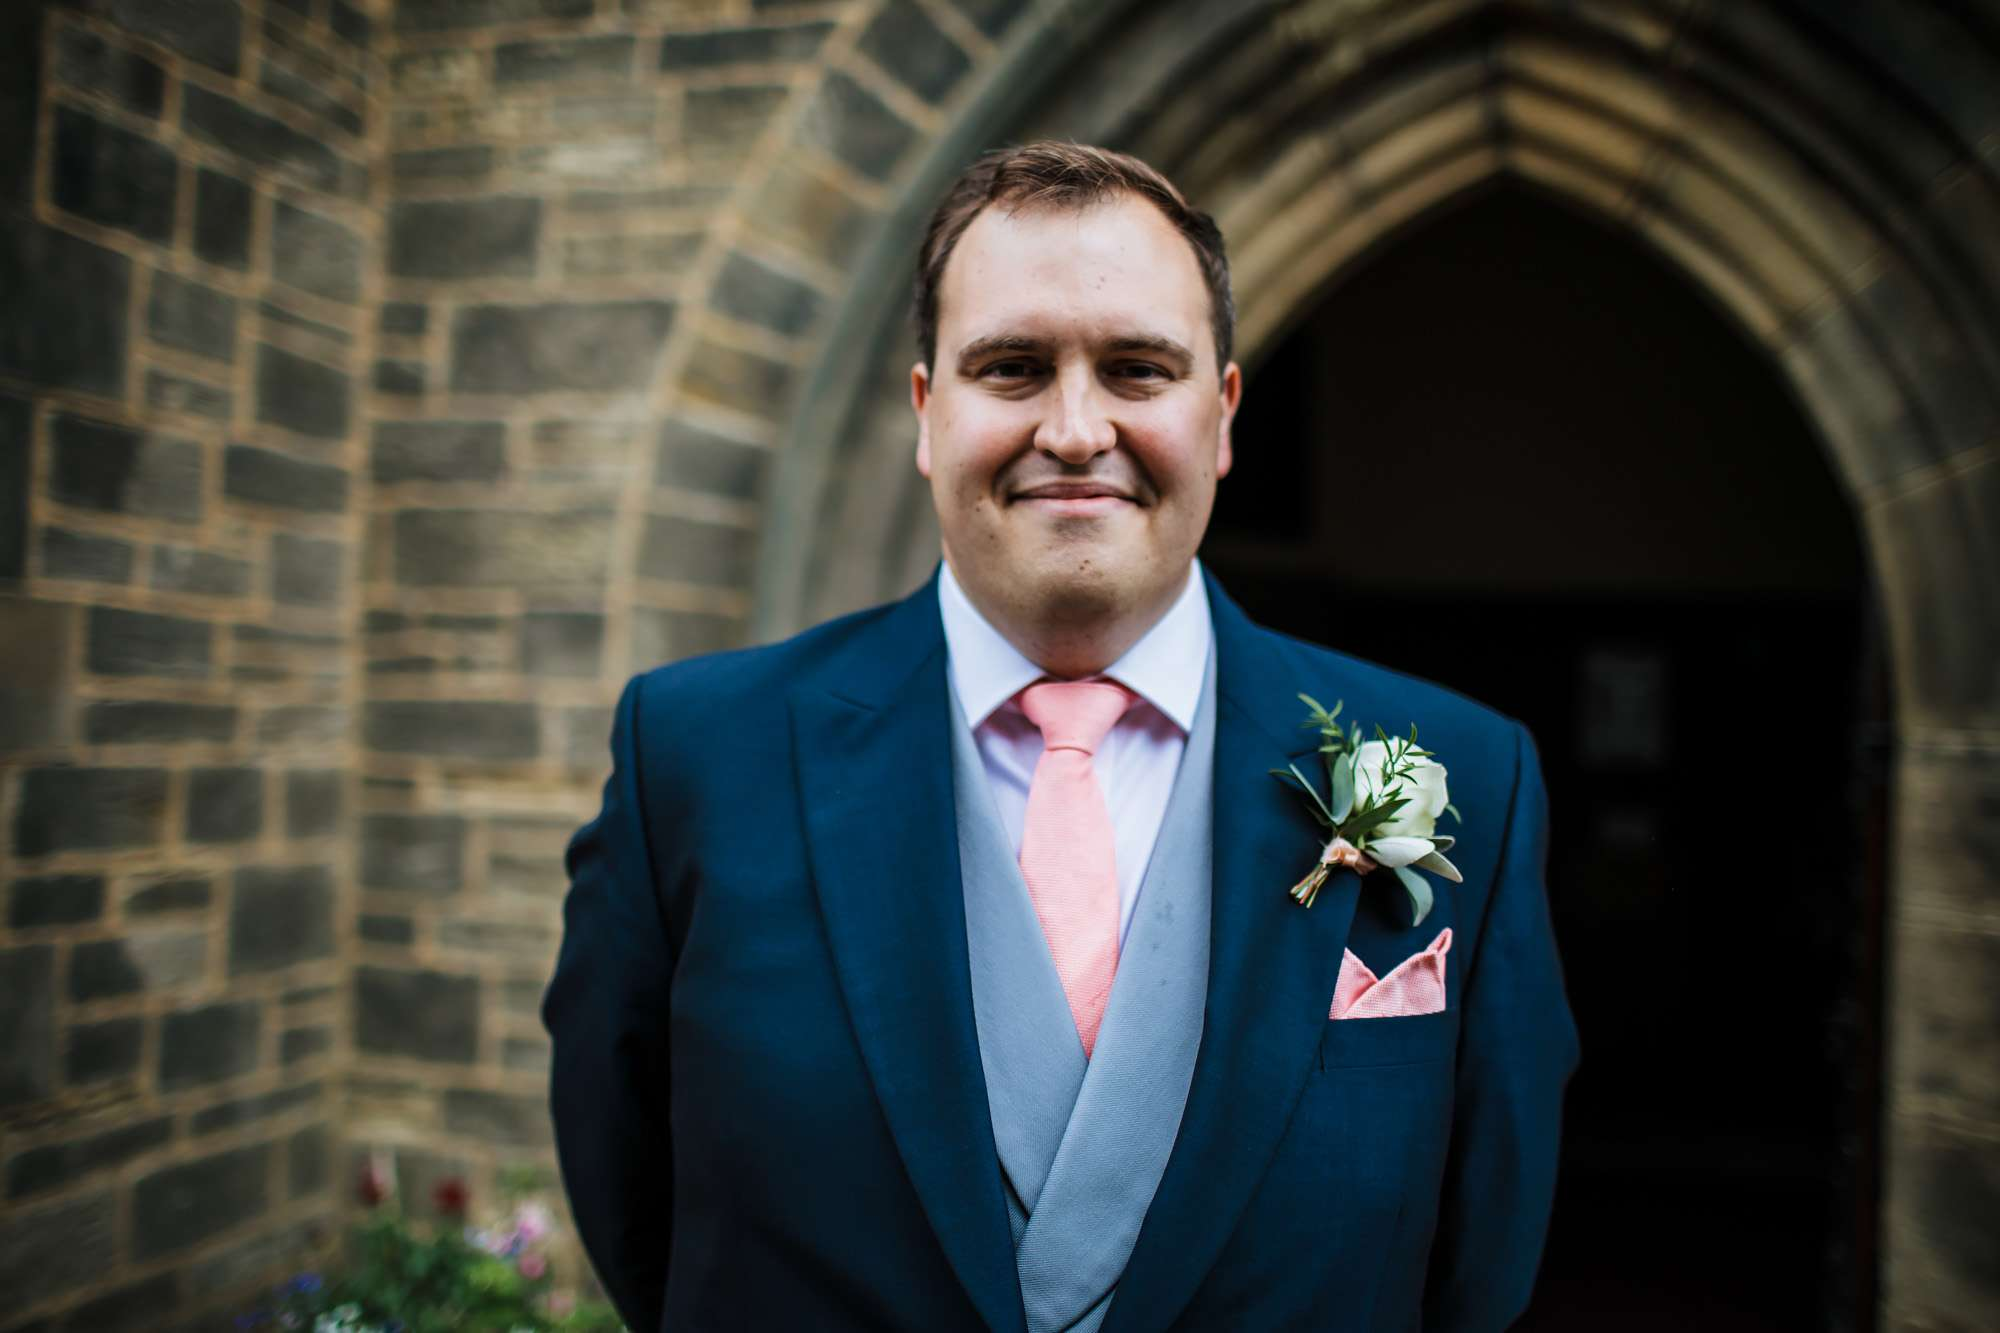 Portrait of a groom on his wedding day